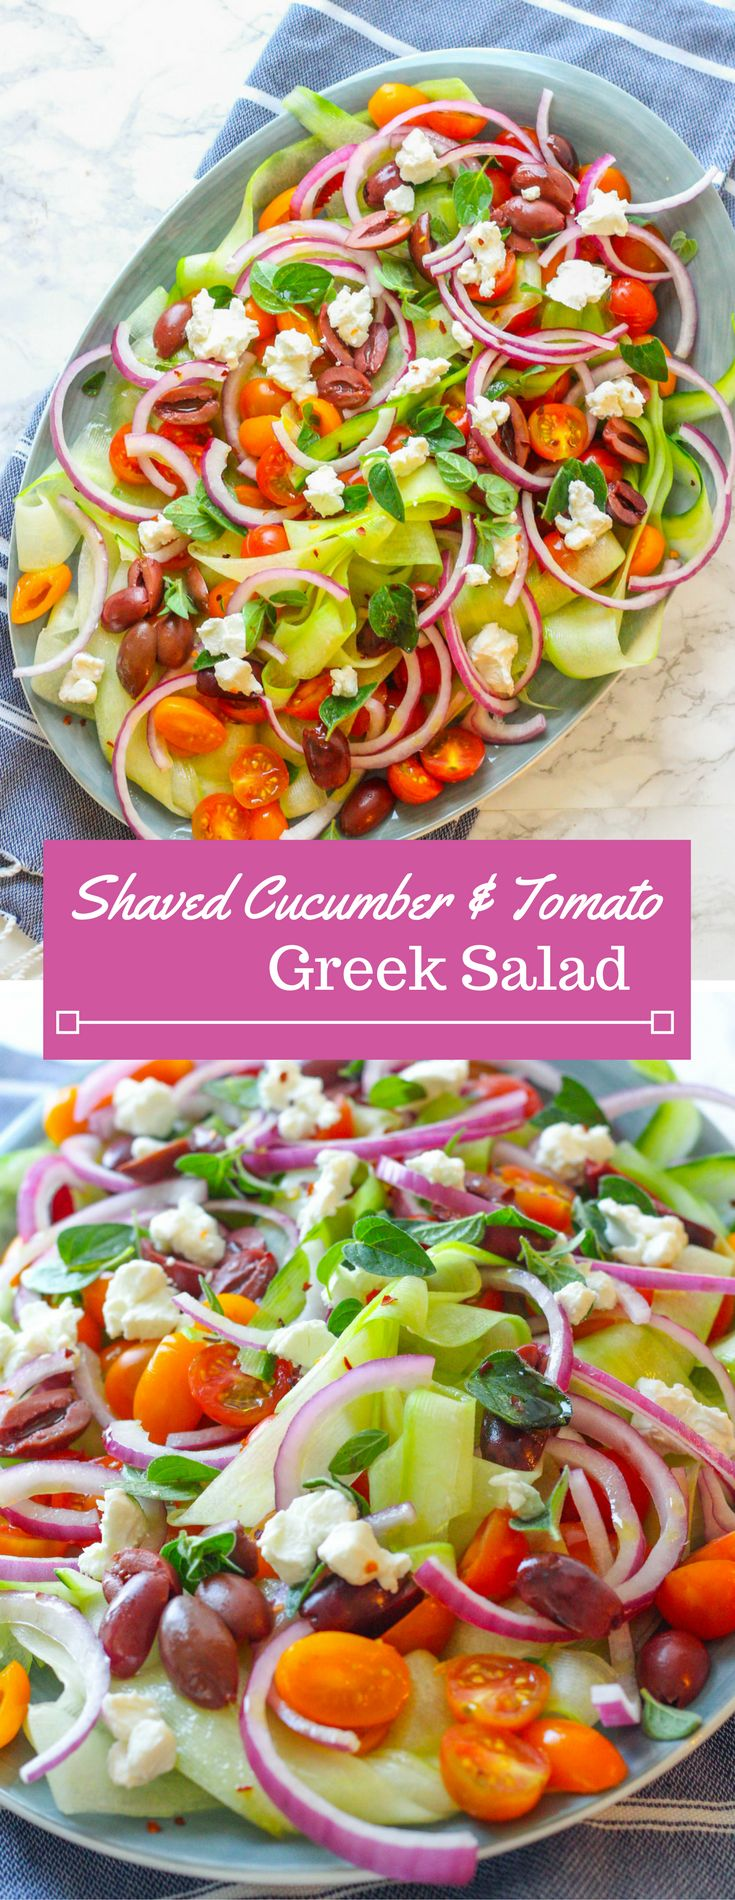 Shaved cucumber   cherry tomatoes   goat cheese   red onion   Spring Salad   Mothers Day salad   Brunch recipe   Cucumber noodles   Kalamata olives   oregano